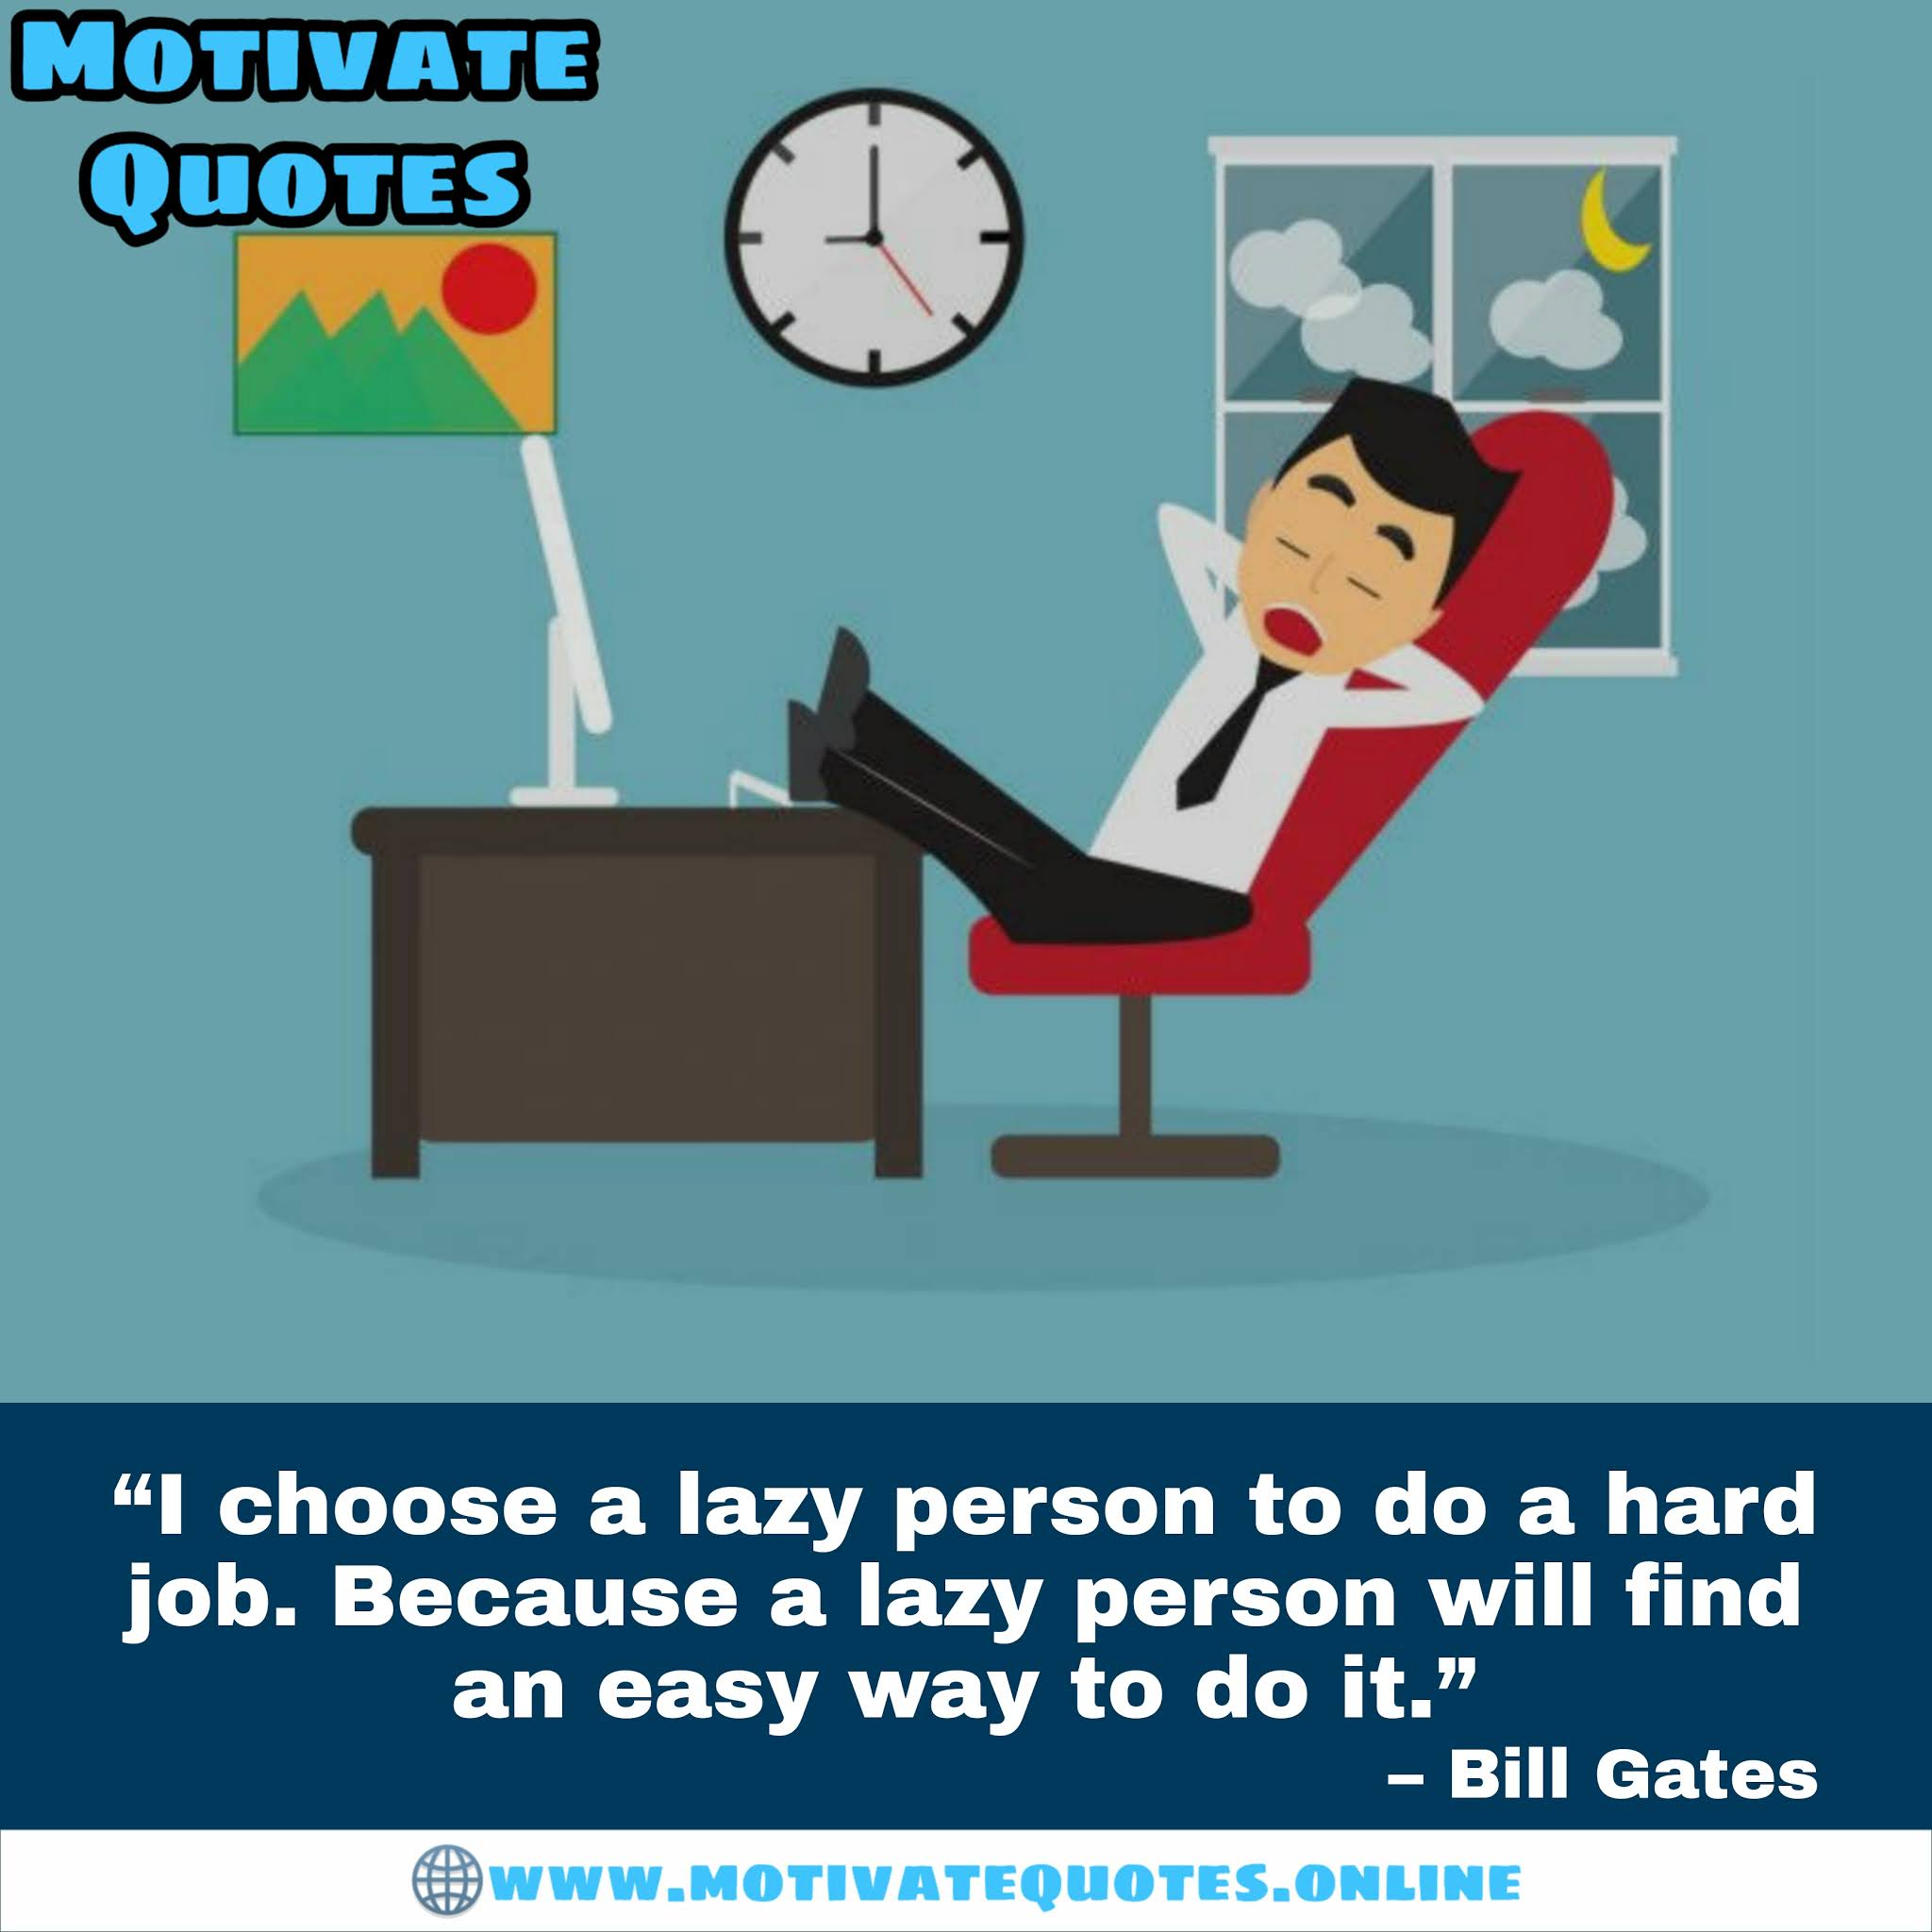 Inspirational Quotes by Bill Gates to drive yourself ahead!